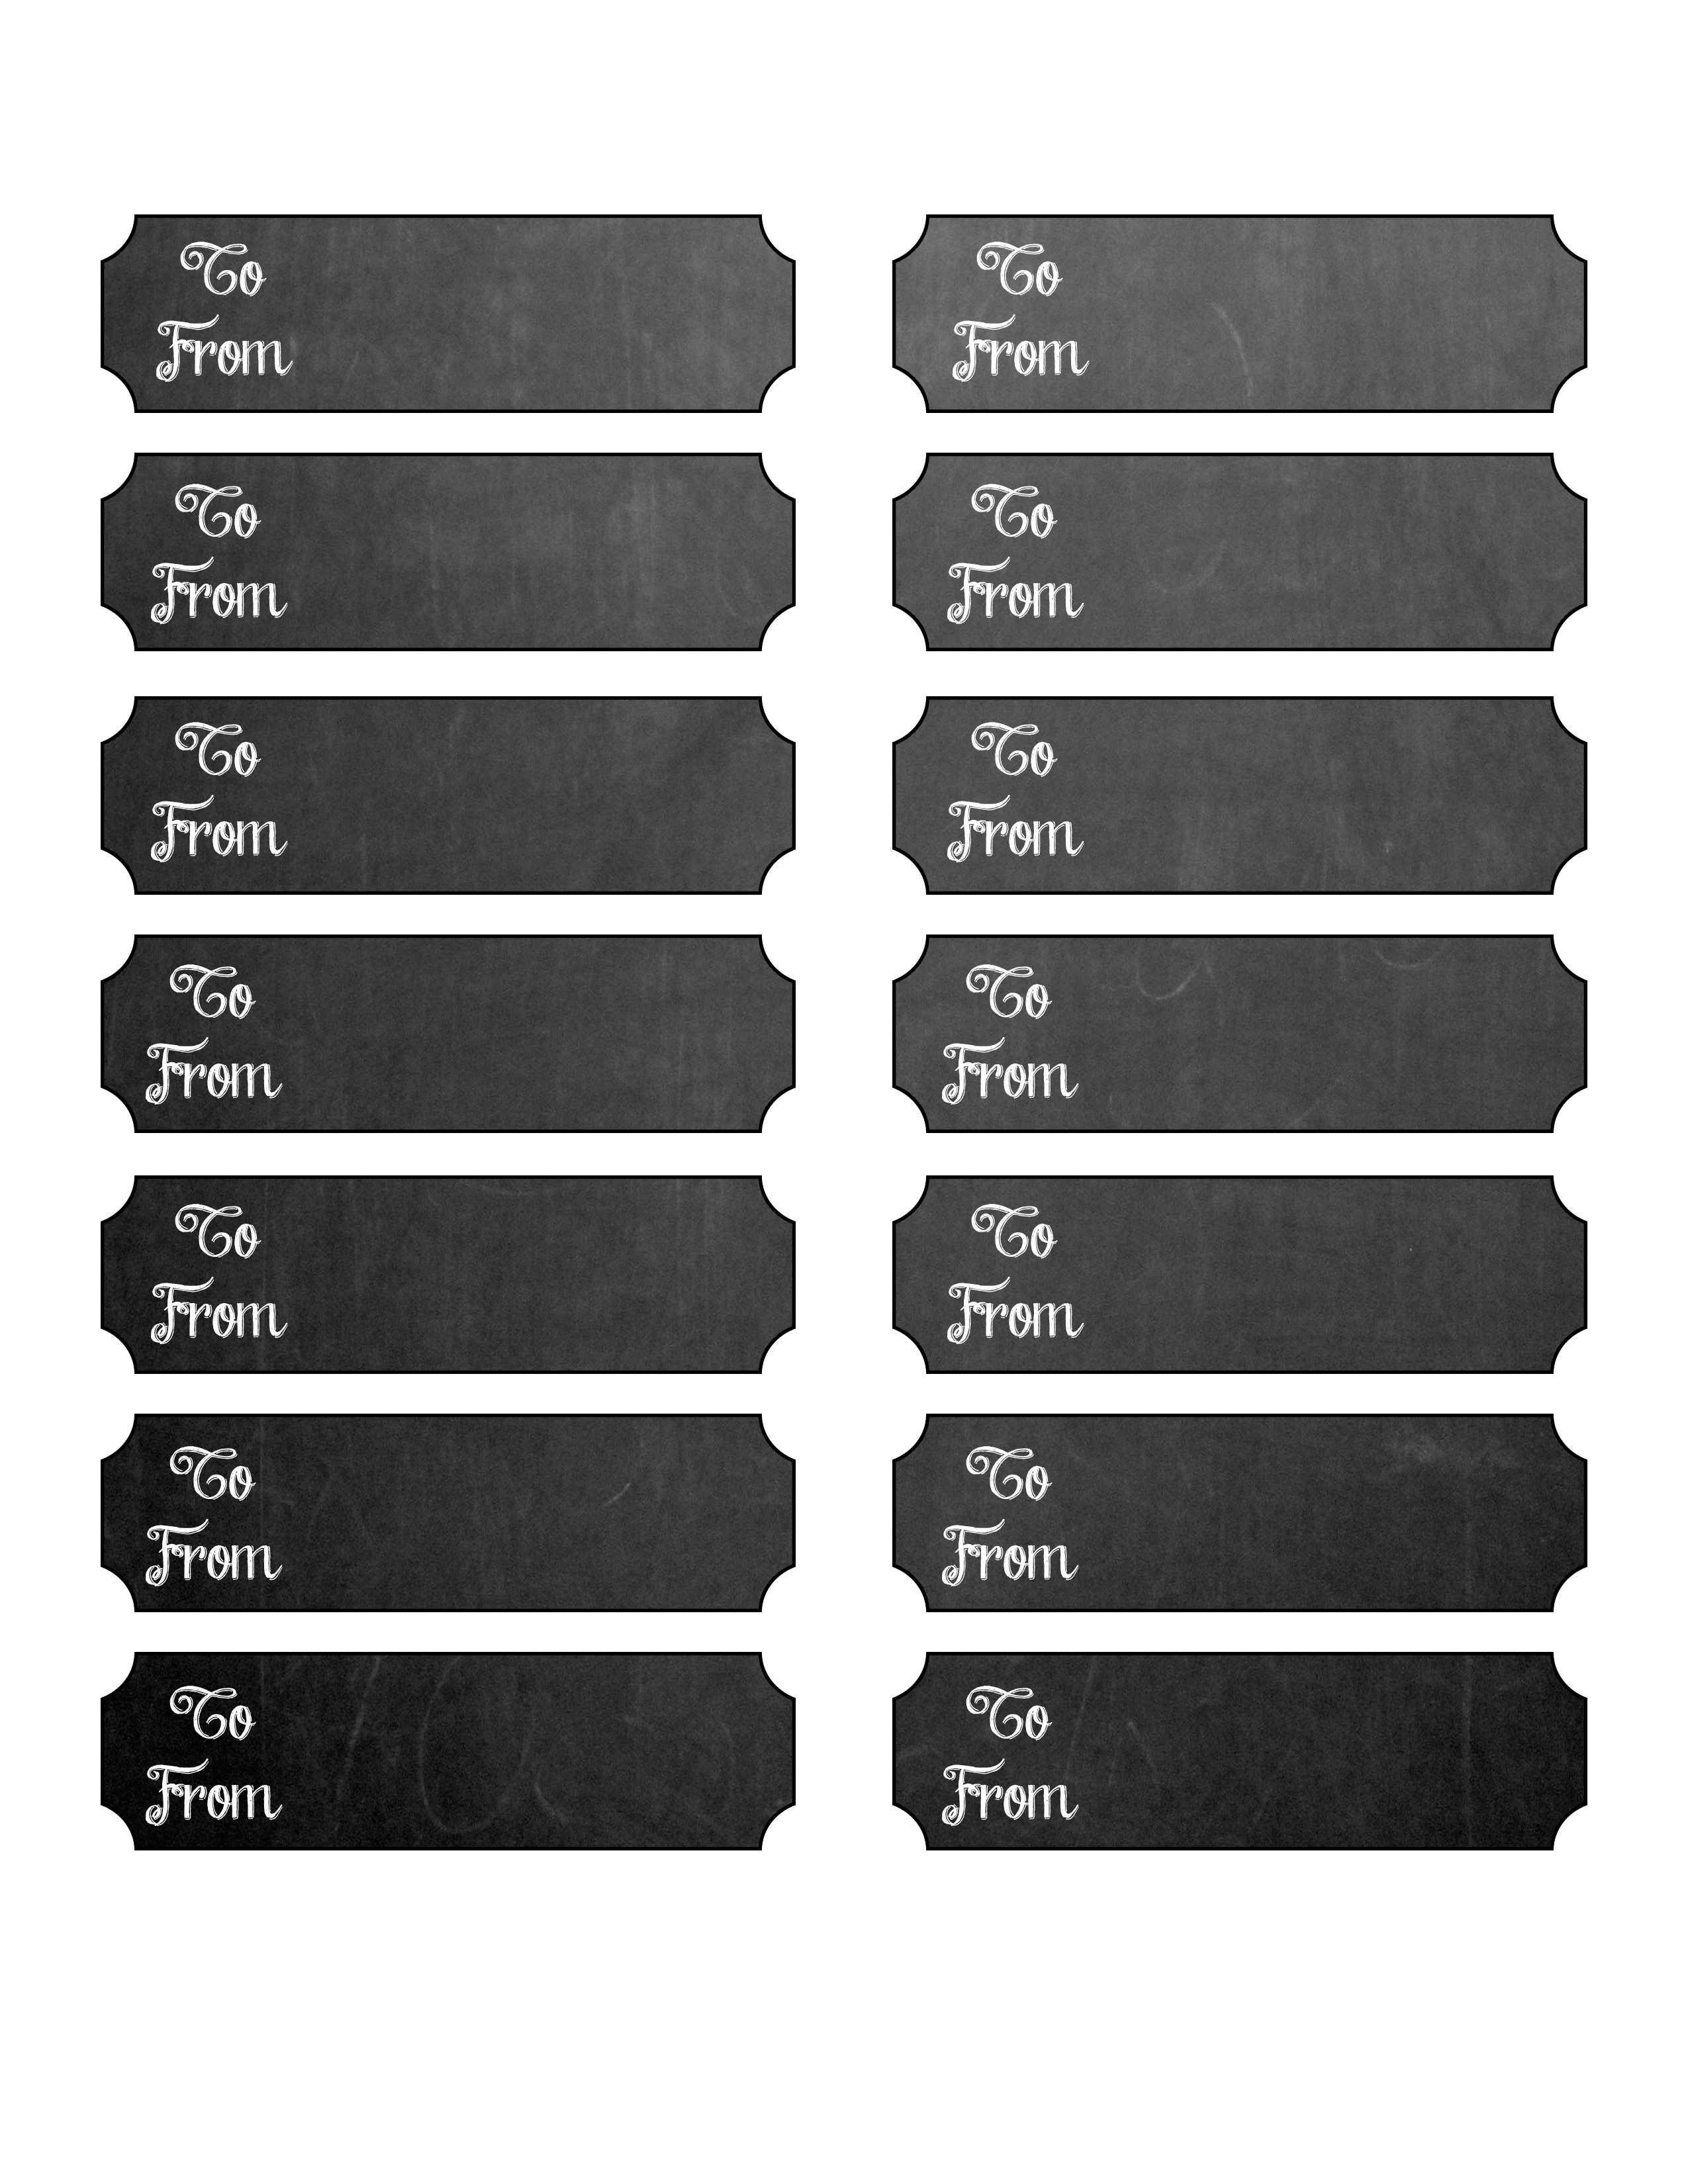 image about Printable Chalkboard Labels referred to as Absolutely free Printable Chalkboard Layout Reward Tags - The Graffical Muse